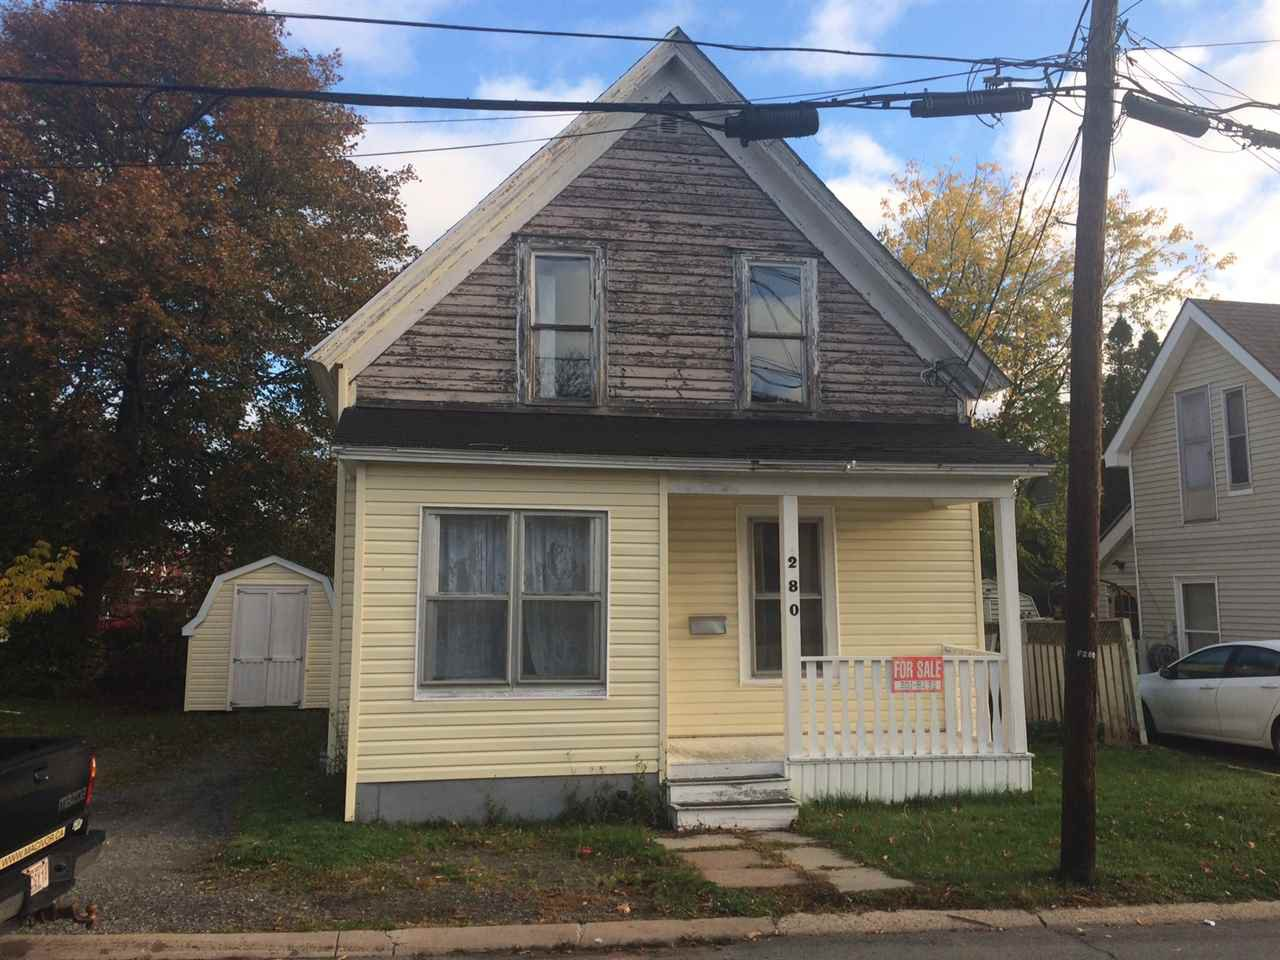 Main Photo: 280 Brother Street in New Glasgow: 106-New Glasgow, Stellarton Residential for sale (Northern Region)  : MLS®# 202002001